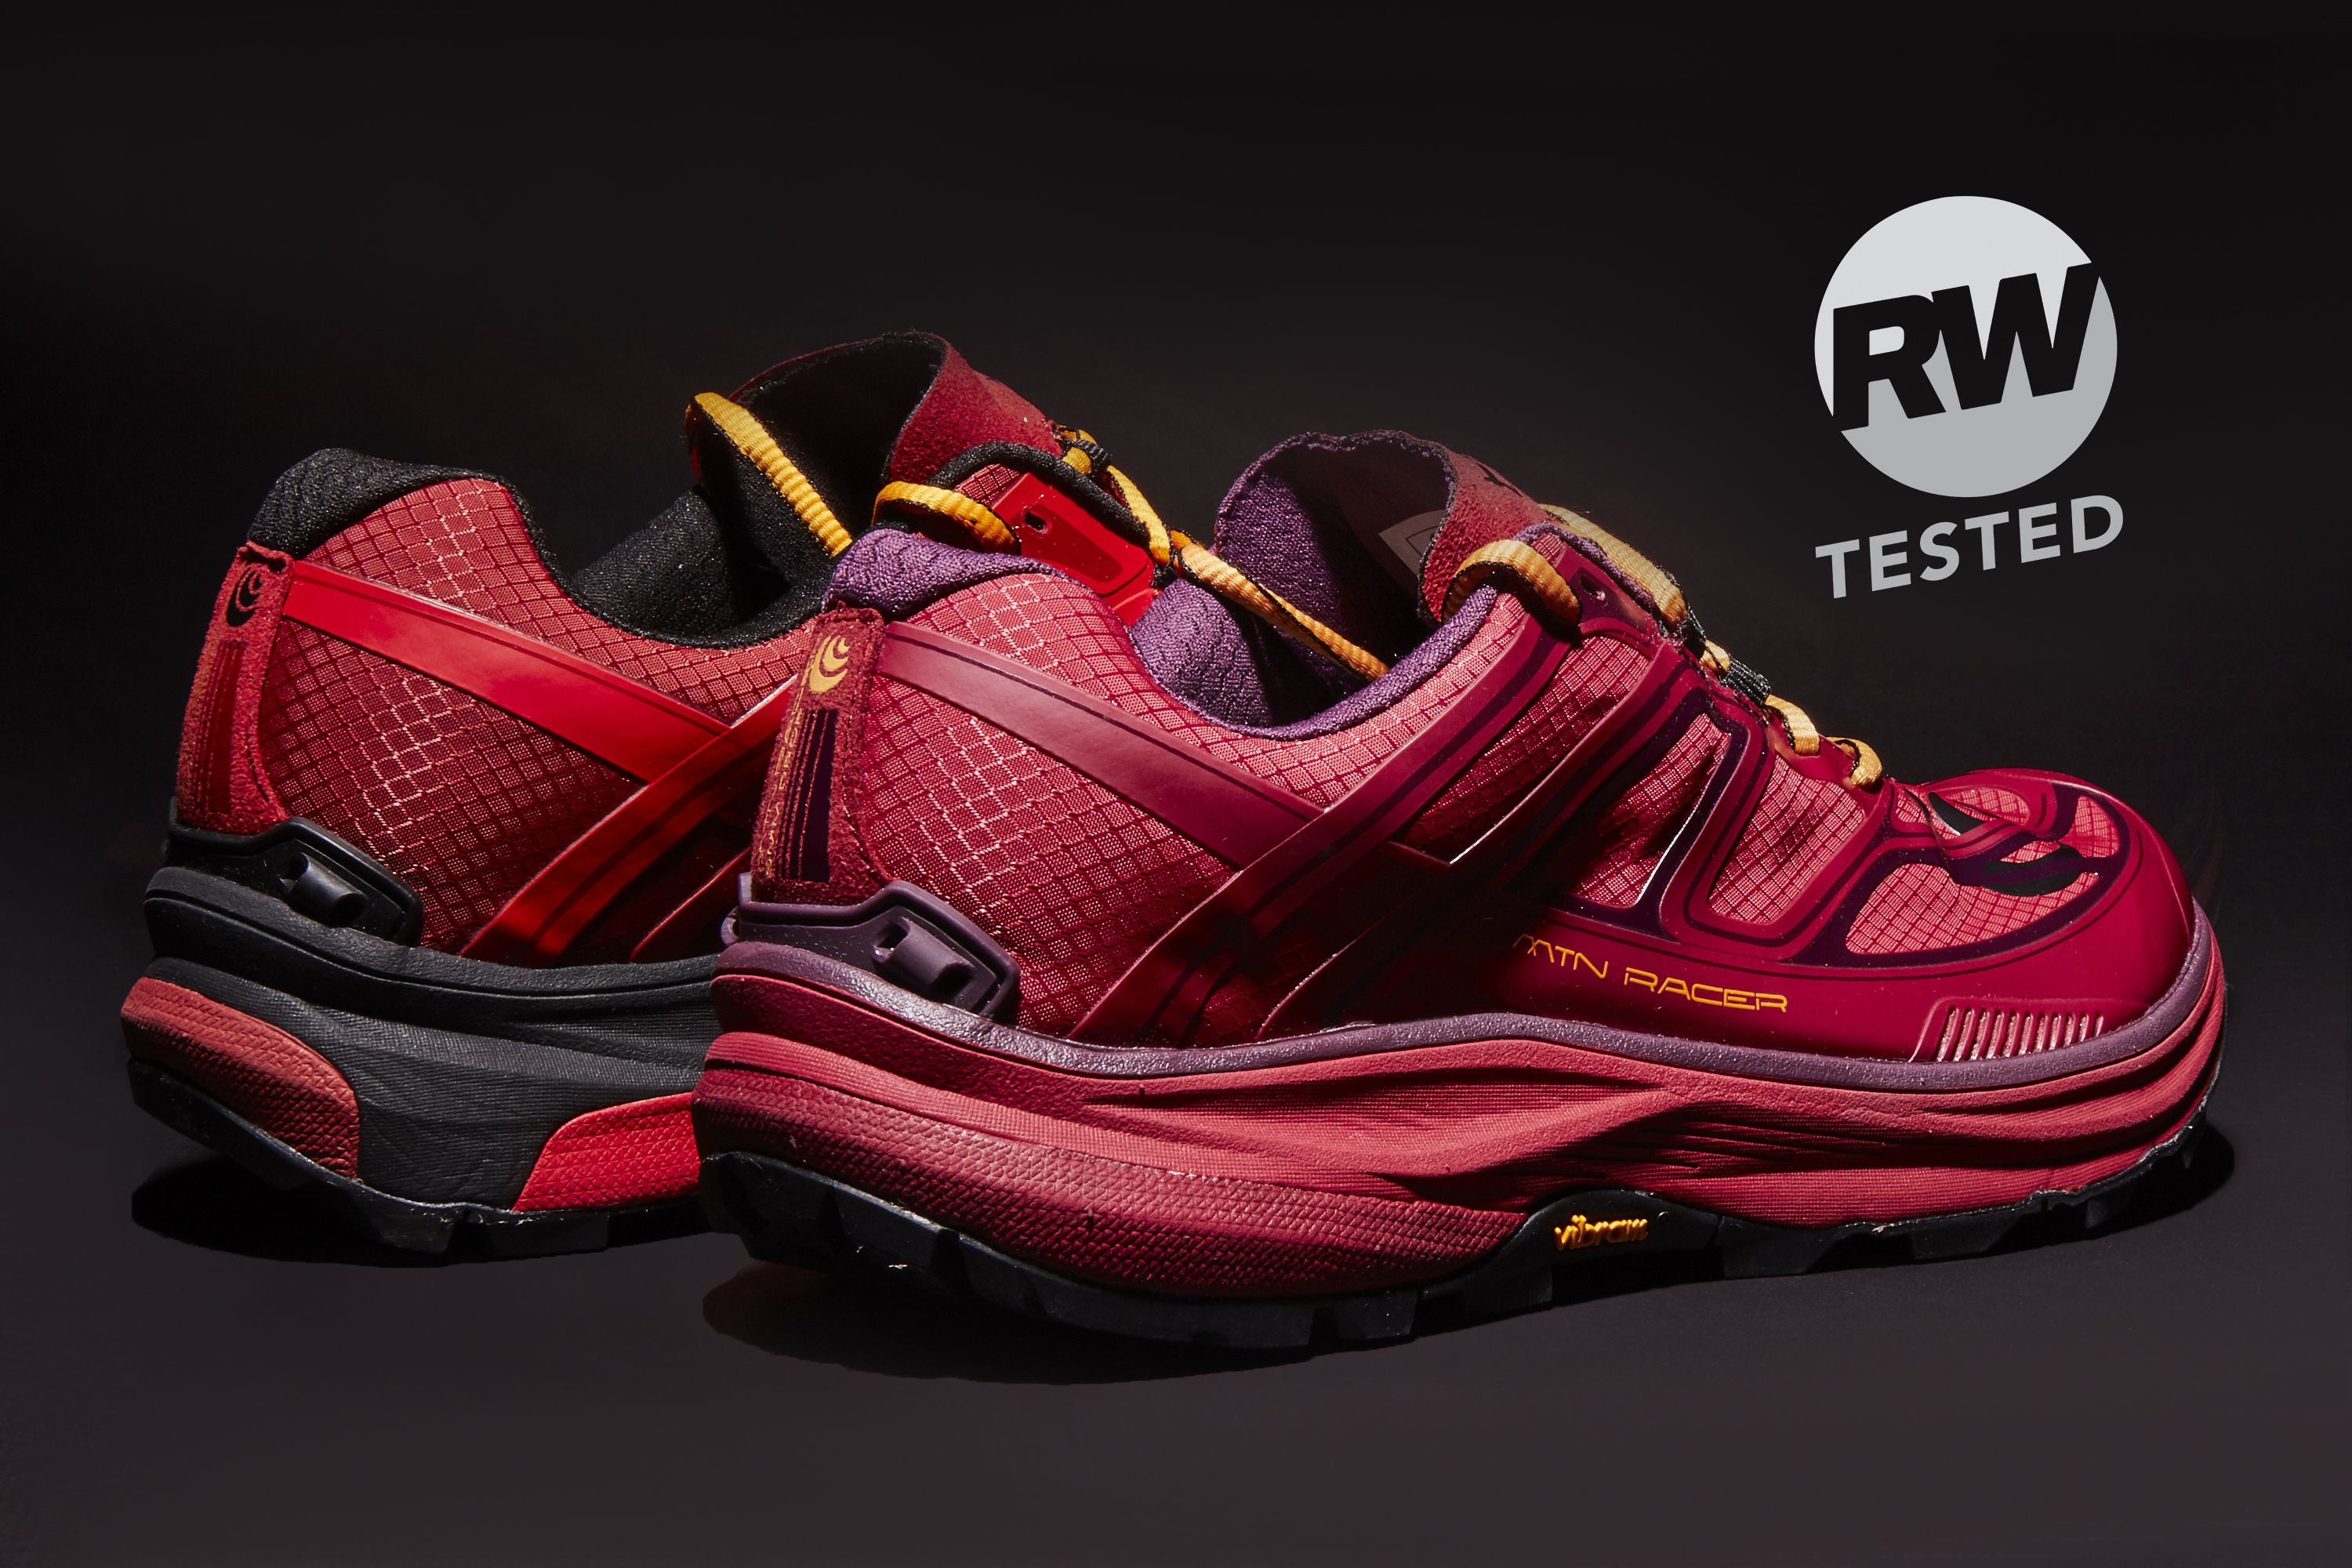 Shoe Testers Unanimously Agree the MTN Racer Has Outstanding Traction